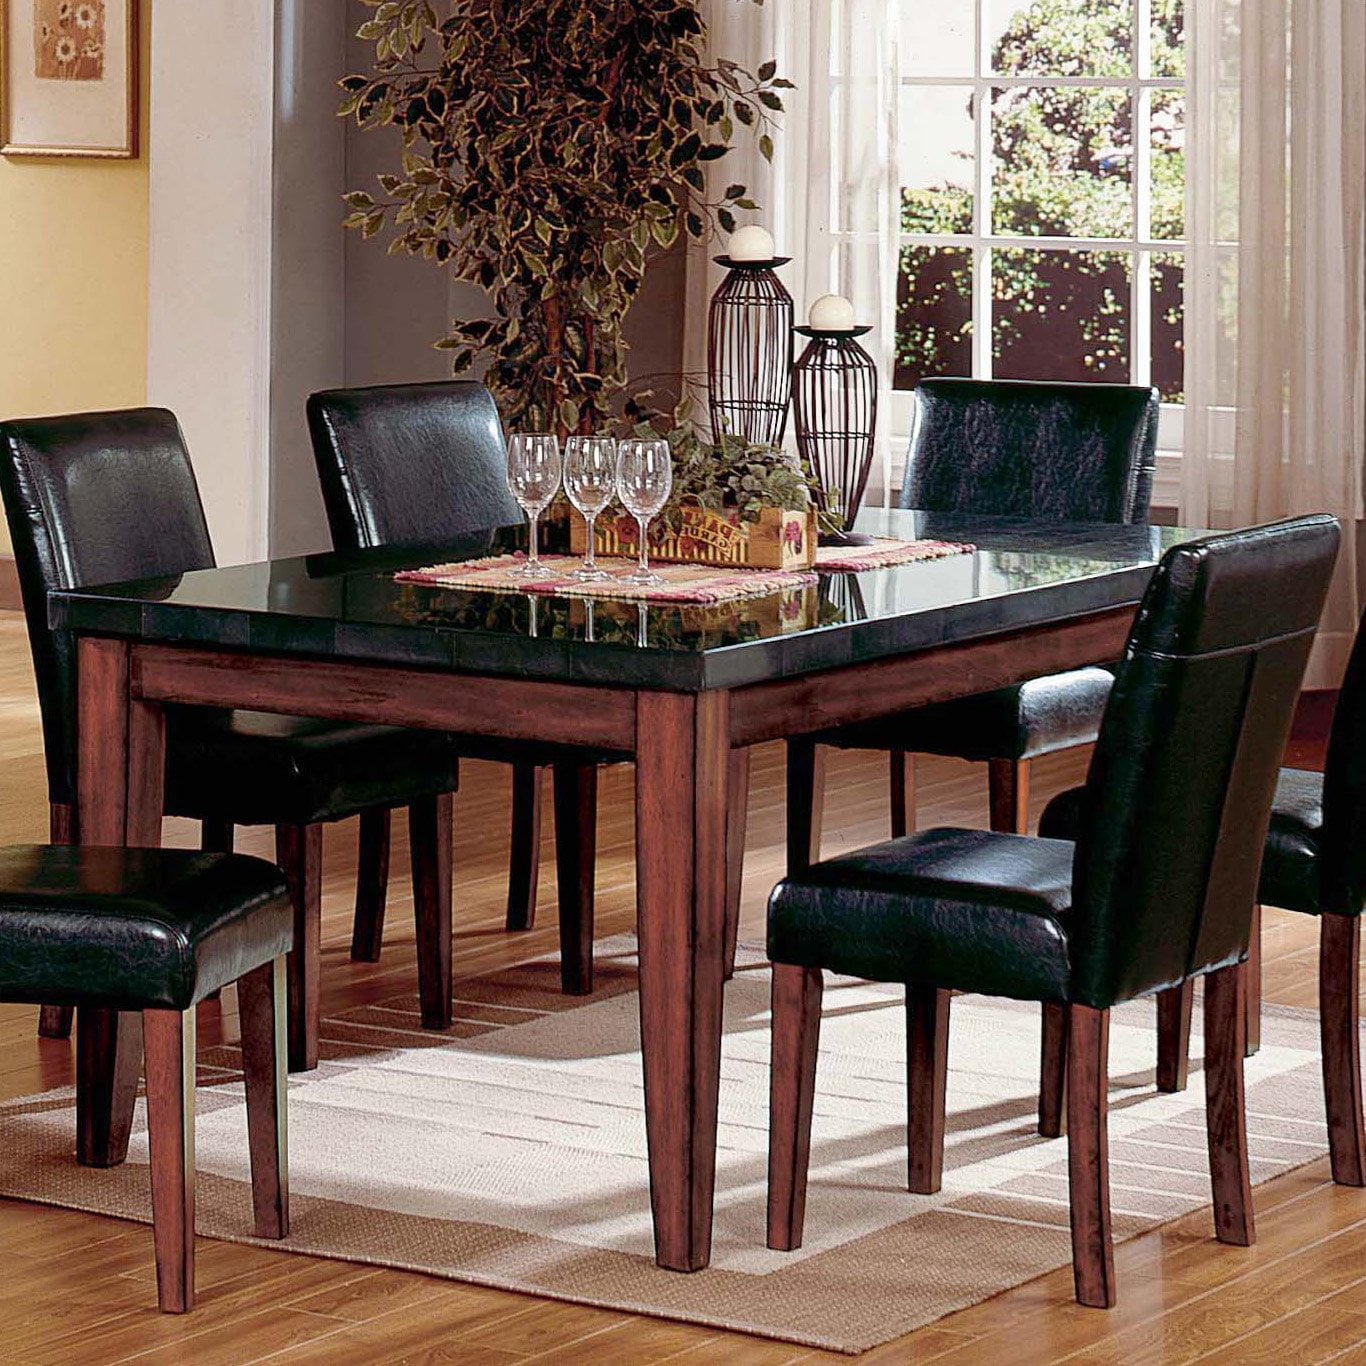 Steve Silver Montibello Granite Top Rectangular Table Walmartcom - Stone top rectangular dining table